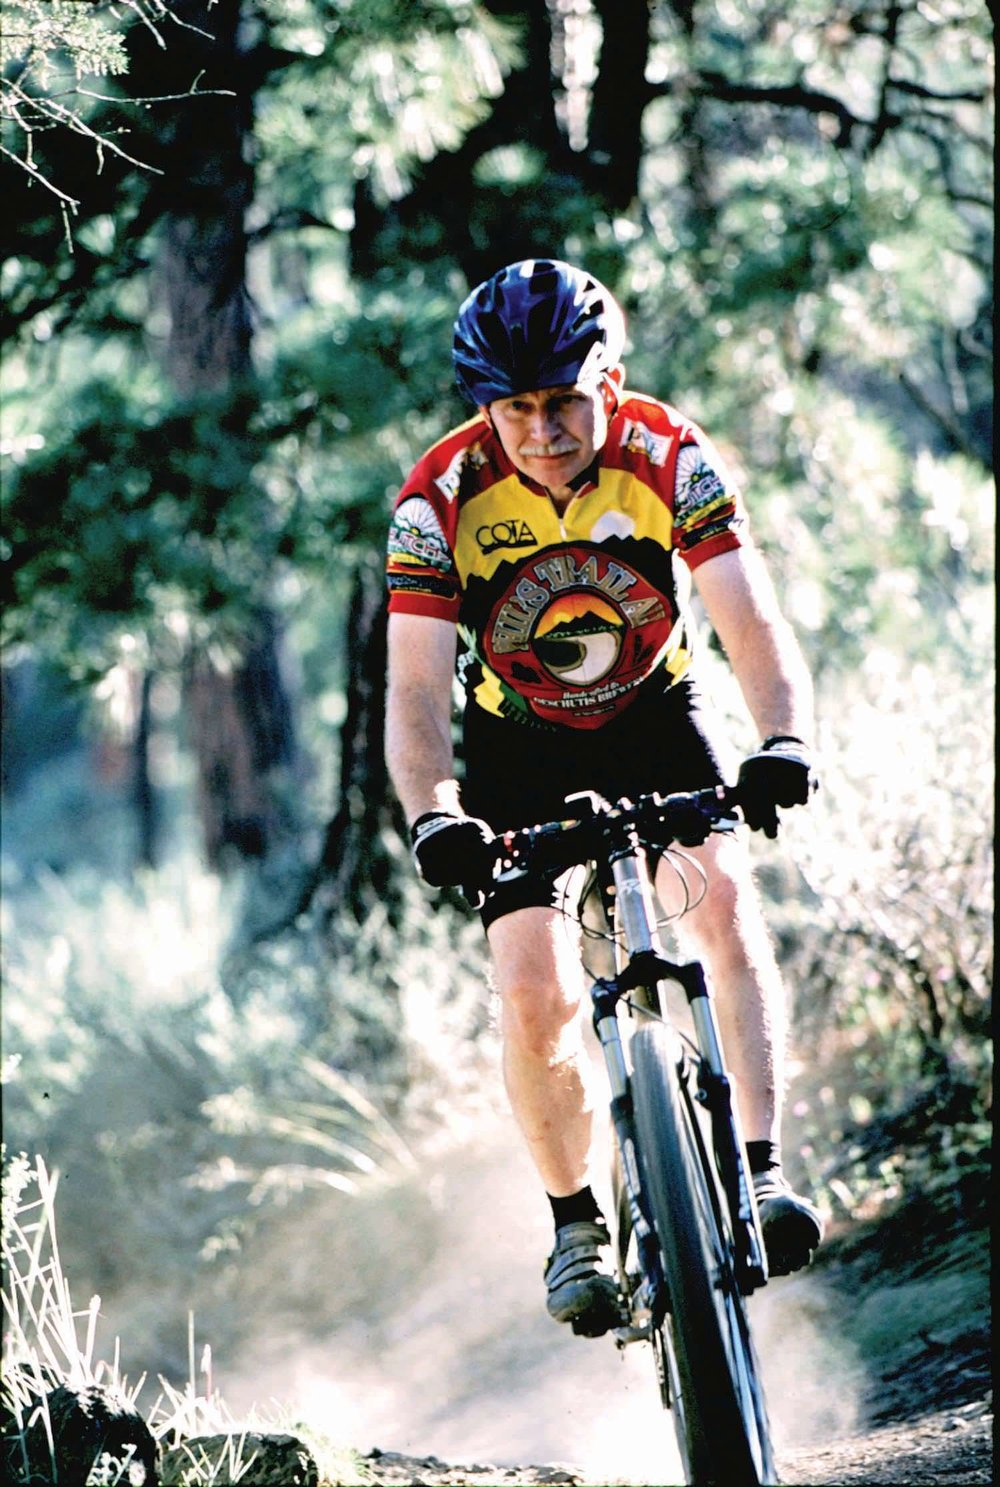 Phil_Meglasson_-rides_his_prized_creation_Mrazek_Trail_2005_RF_PC_Bob_Woodward.jpg